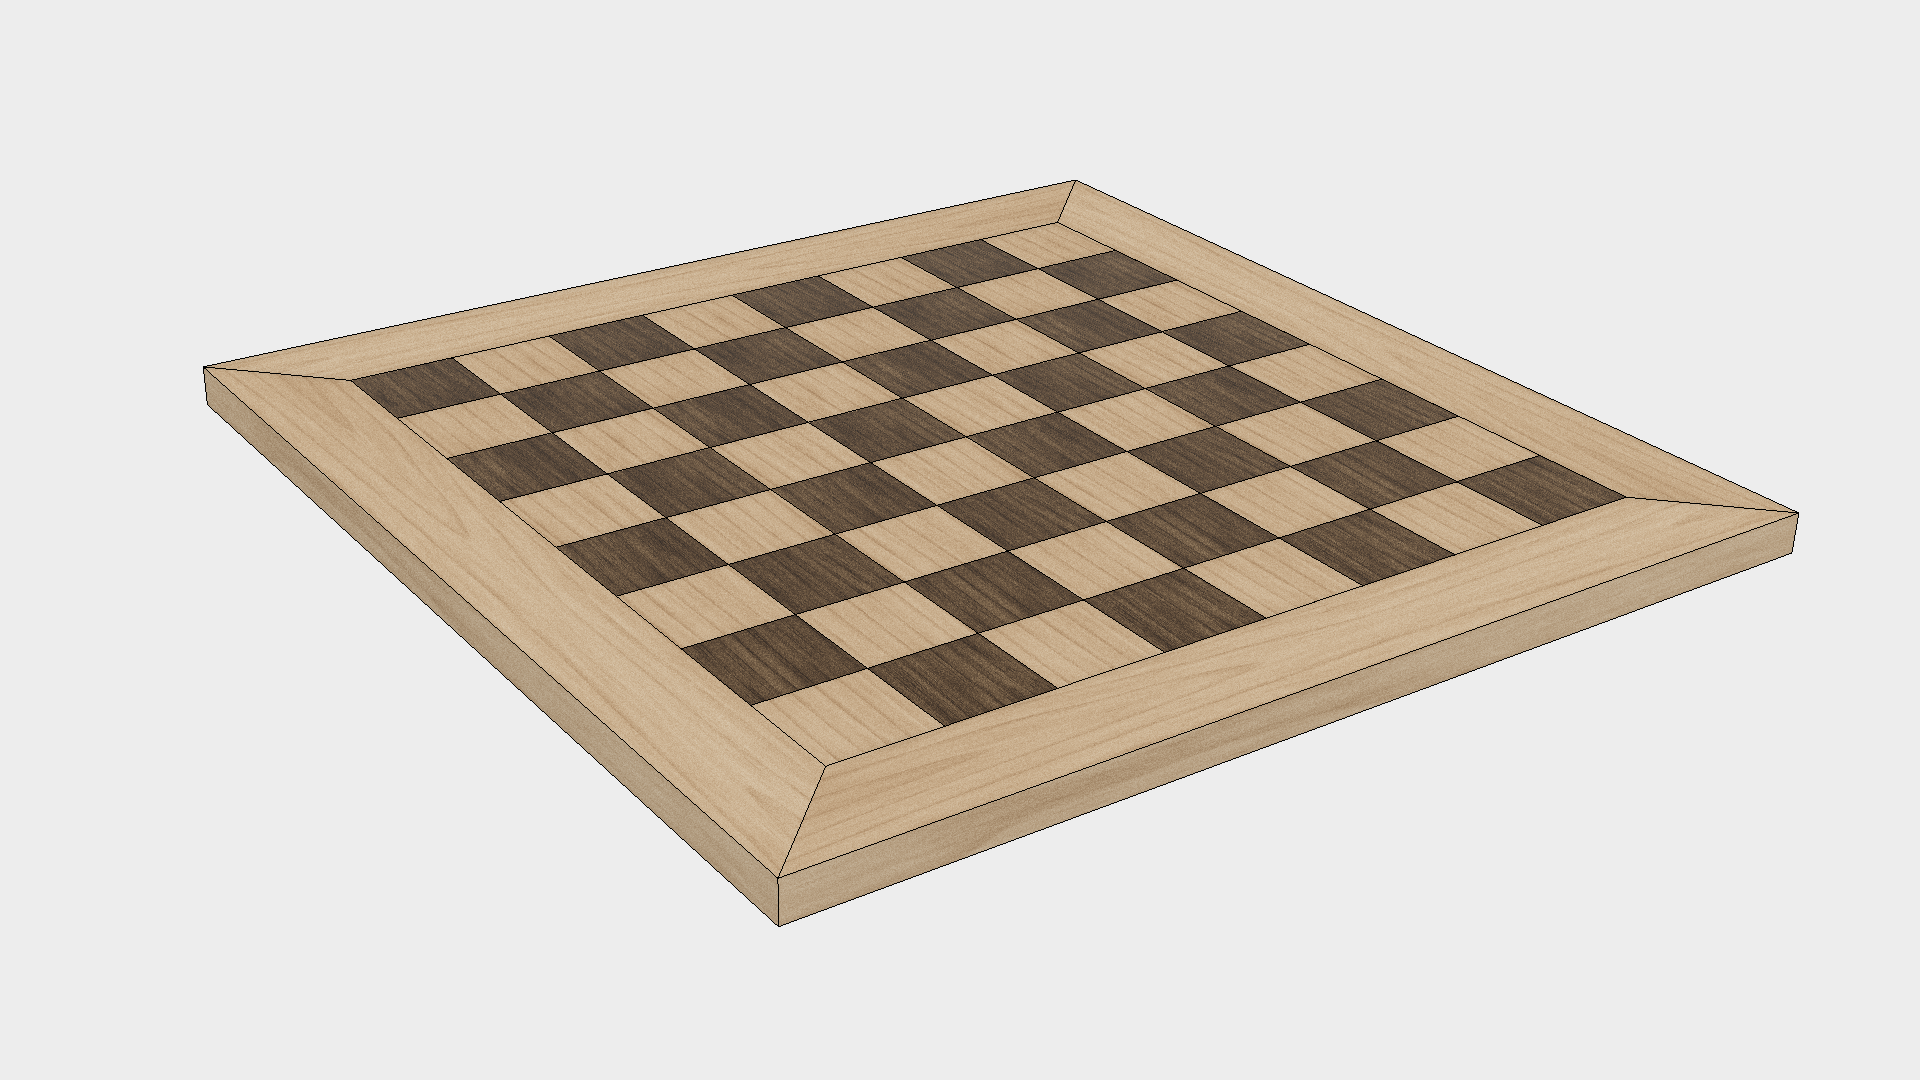 How to Make a Chess Board - Step 8